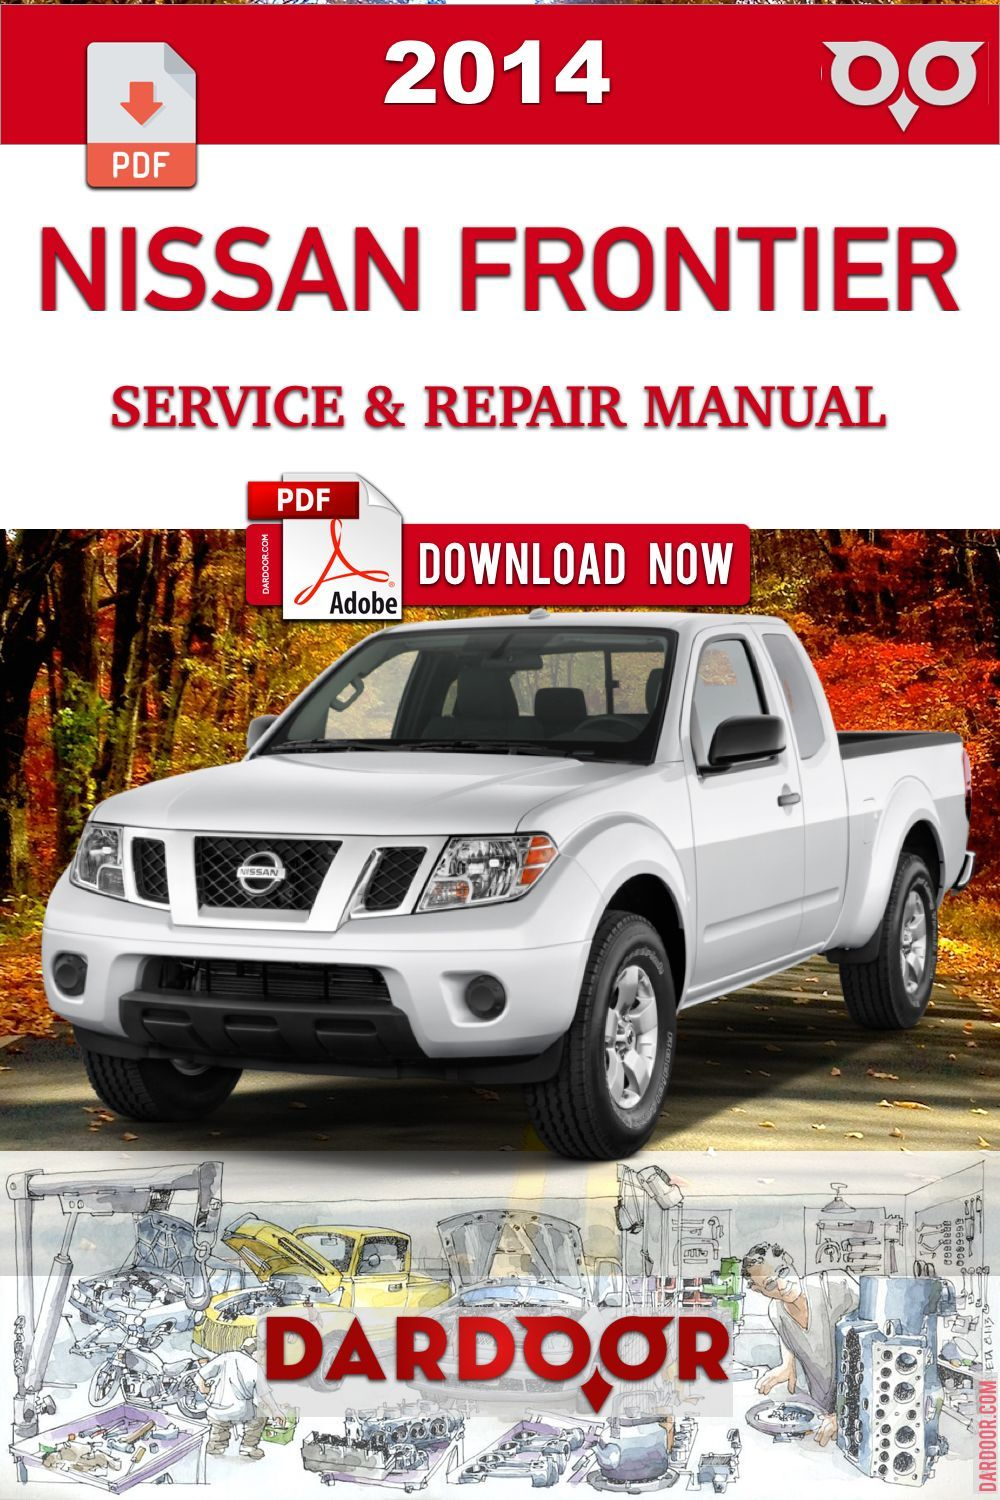 2014 Nissan Frontier Factory Service Repair Manual Pdf Carrepairmanuals Factory Frontier Manual Ni 2014 Nissan Frontier Nissan Frontier Repair Manuals